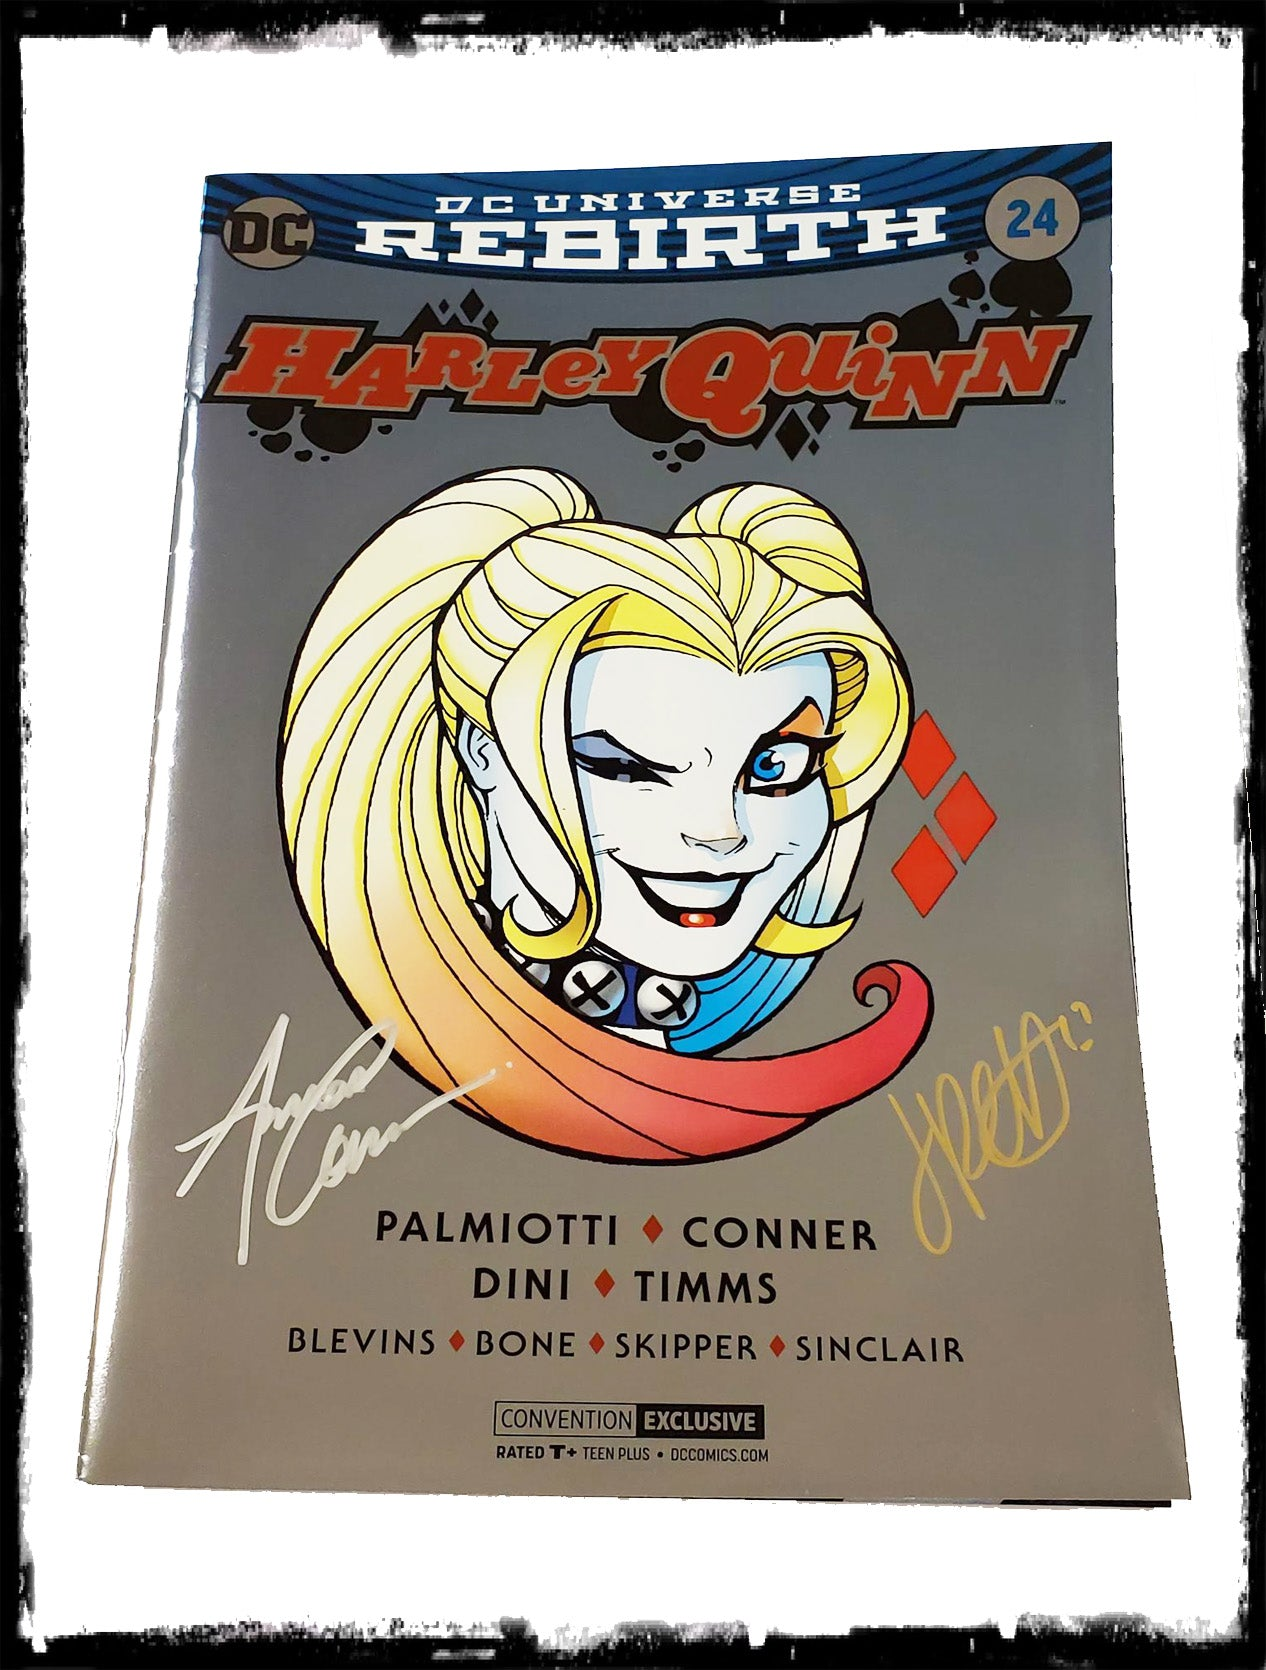 HARLEY QUINN - #24 (FOIL CON EXCLUSIVE - Signed by Amanda Conner & Jimmy Palmiotti)!